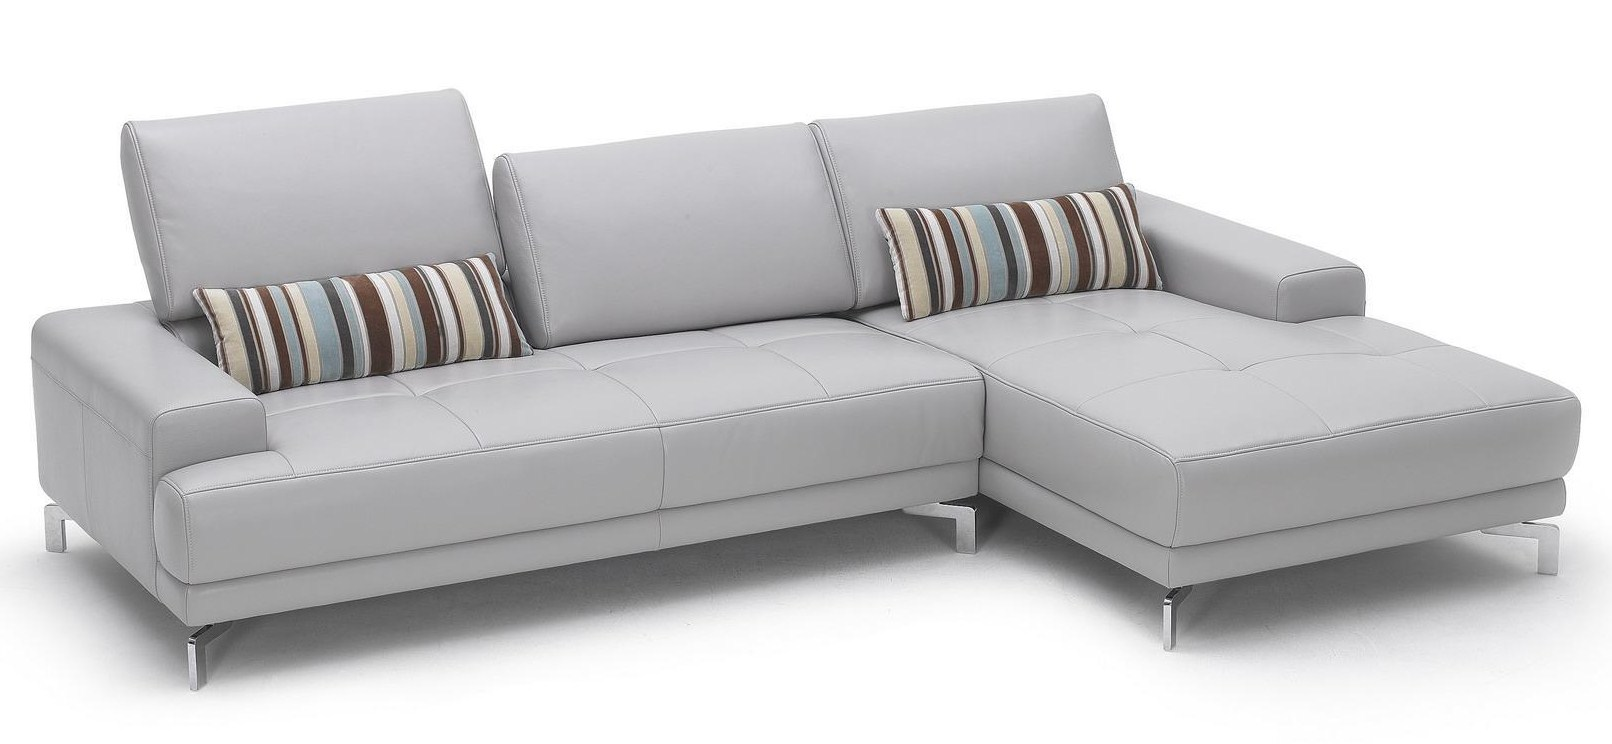 new modern couches best modern couch with moderne sofas sofa LLAKBRN